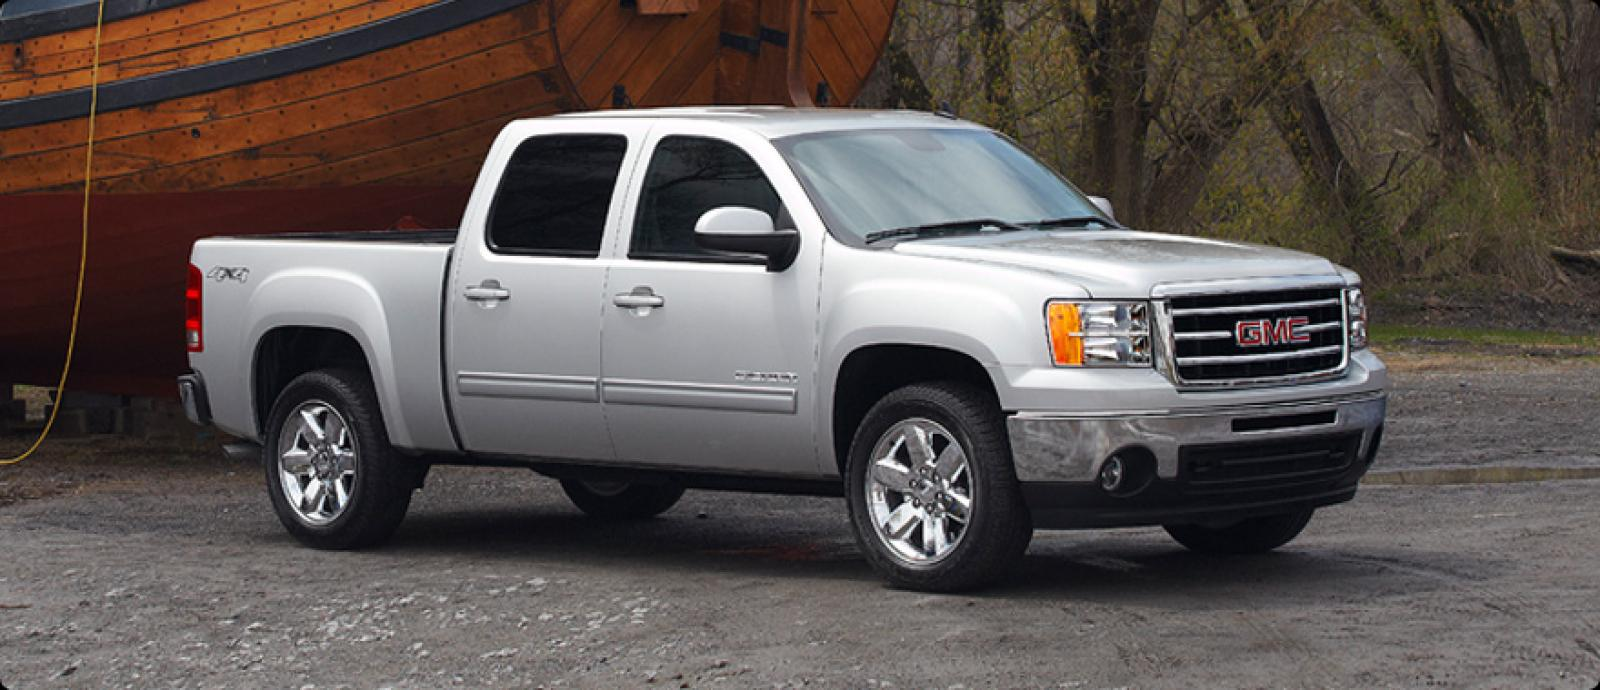 three prevnext quarters sierra gmc world in durability motion stories front news real owners share longevity